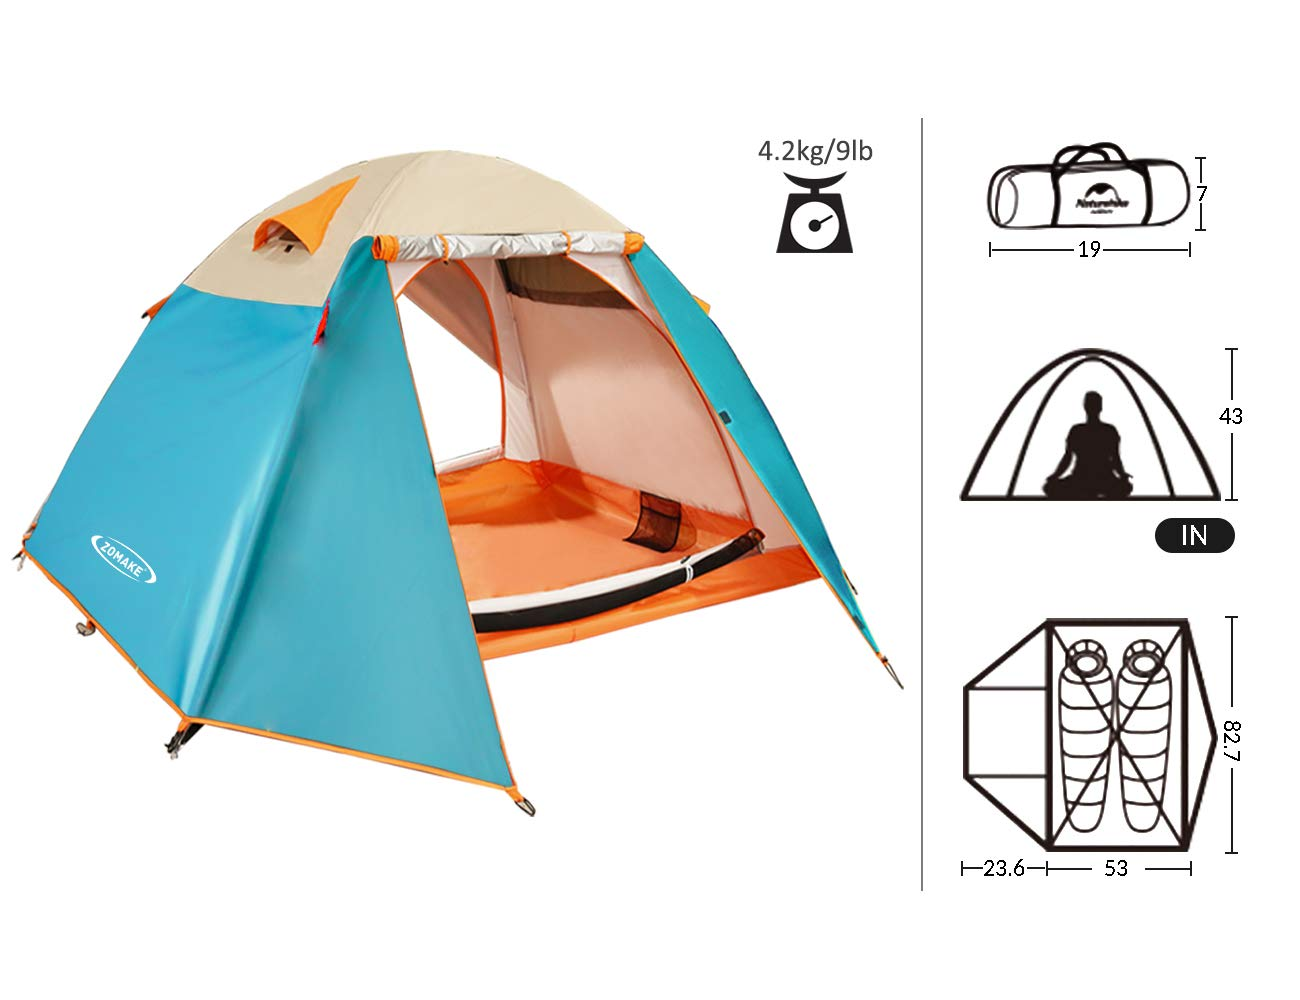 ZOMAKE Lightweight Backpacking Tent 2 Person – 4 Season Waterproof Camping Tent